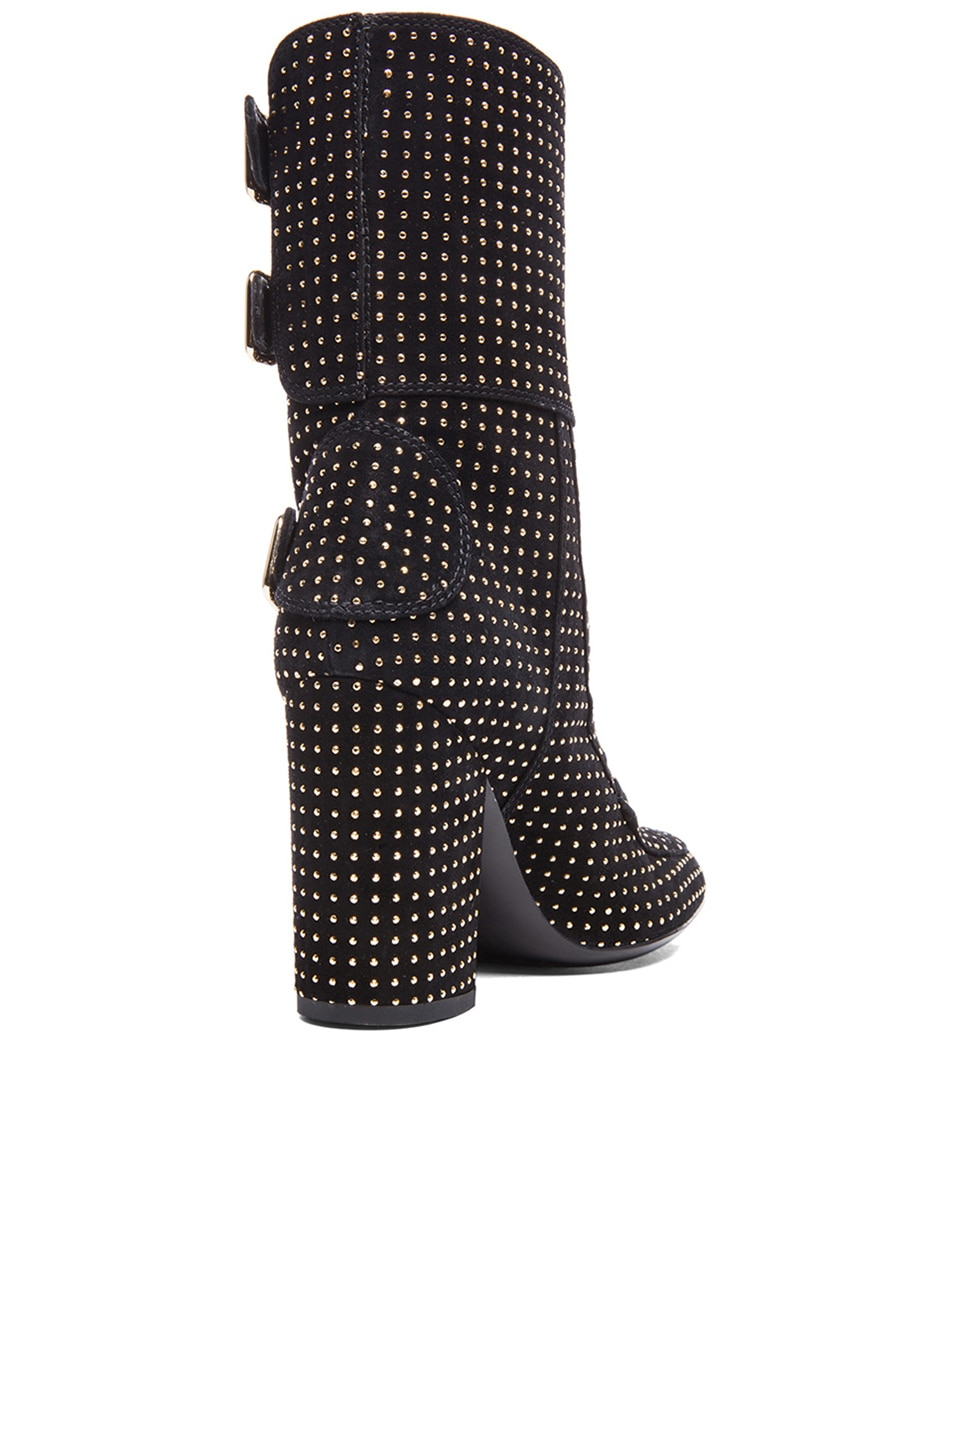 Image 3 of Laurence Dacade Merli Suede Studded Boots in Black & Gold